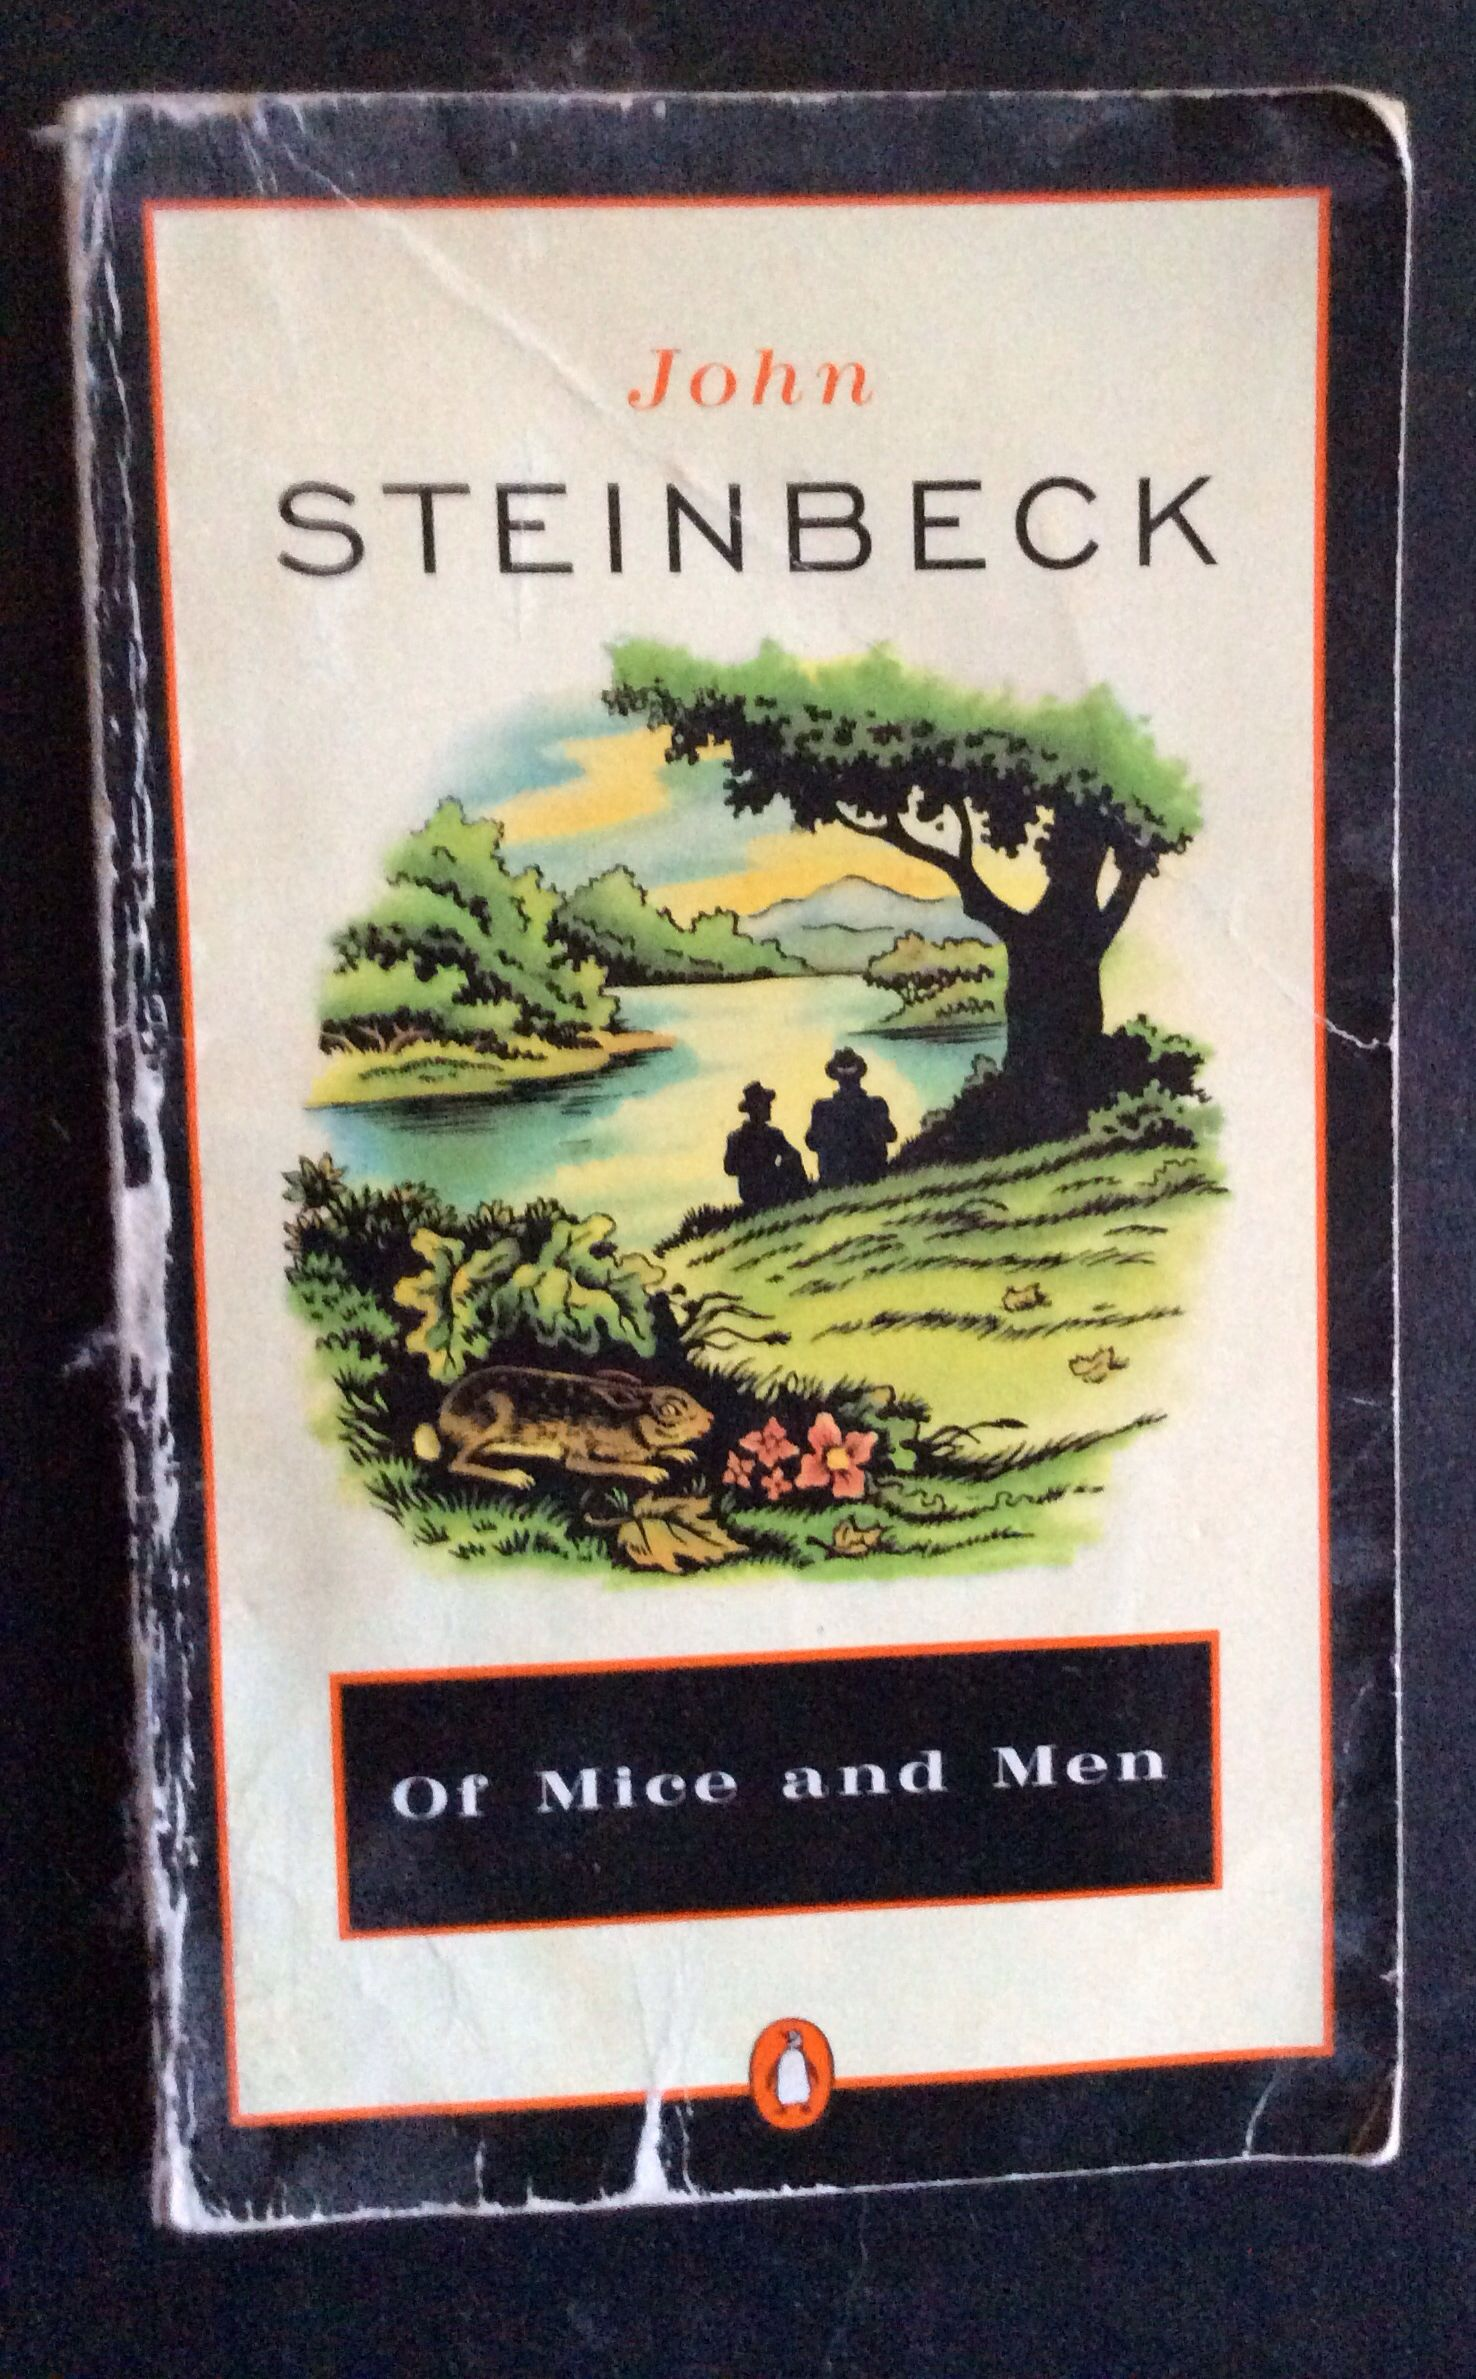 of mice and men by john steinbeck 5 essay